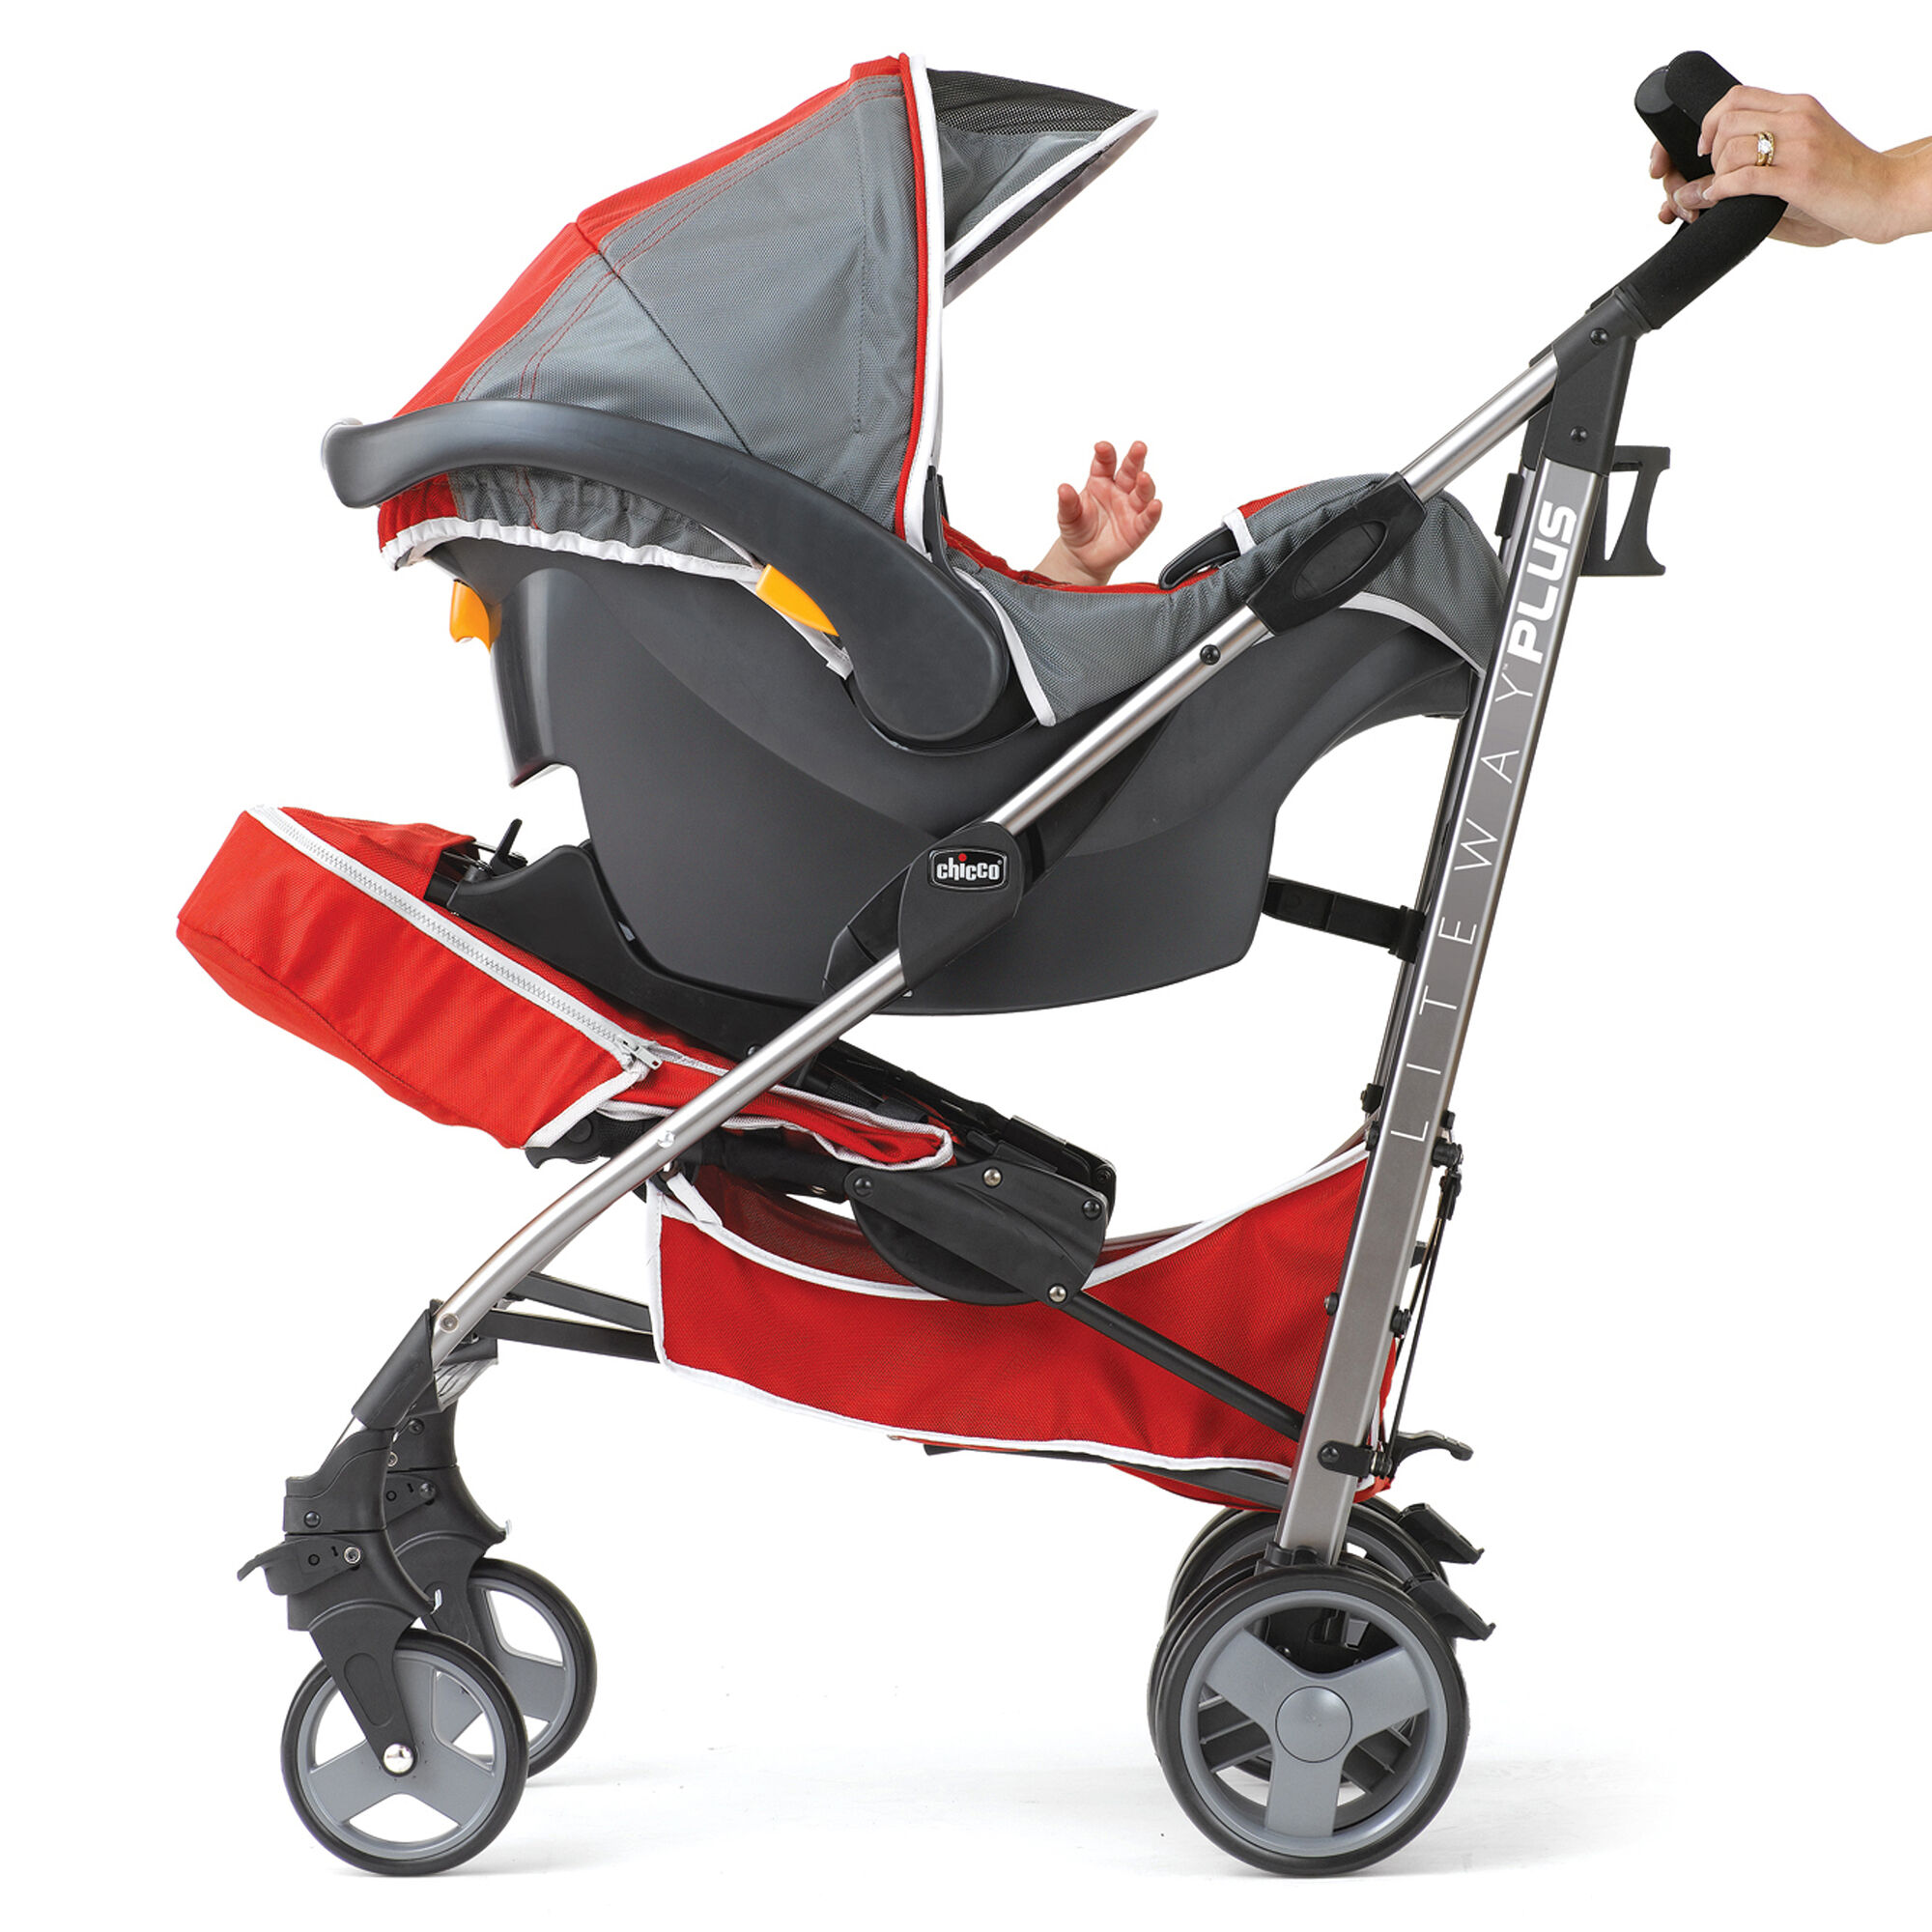 Chicco Liteway Plus 2-in-1 Stroller - Snapdragon